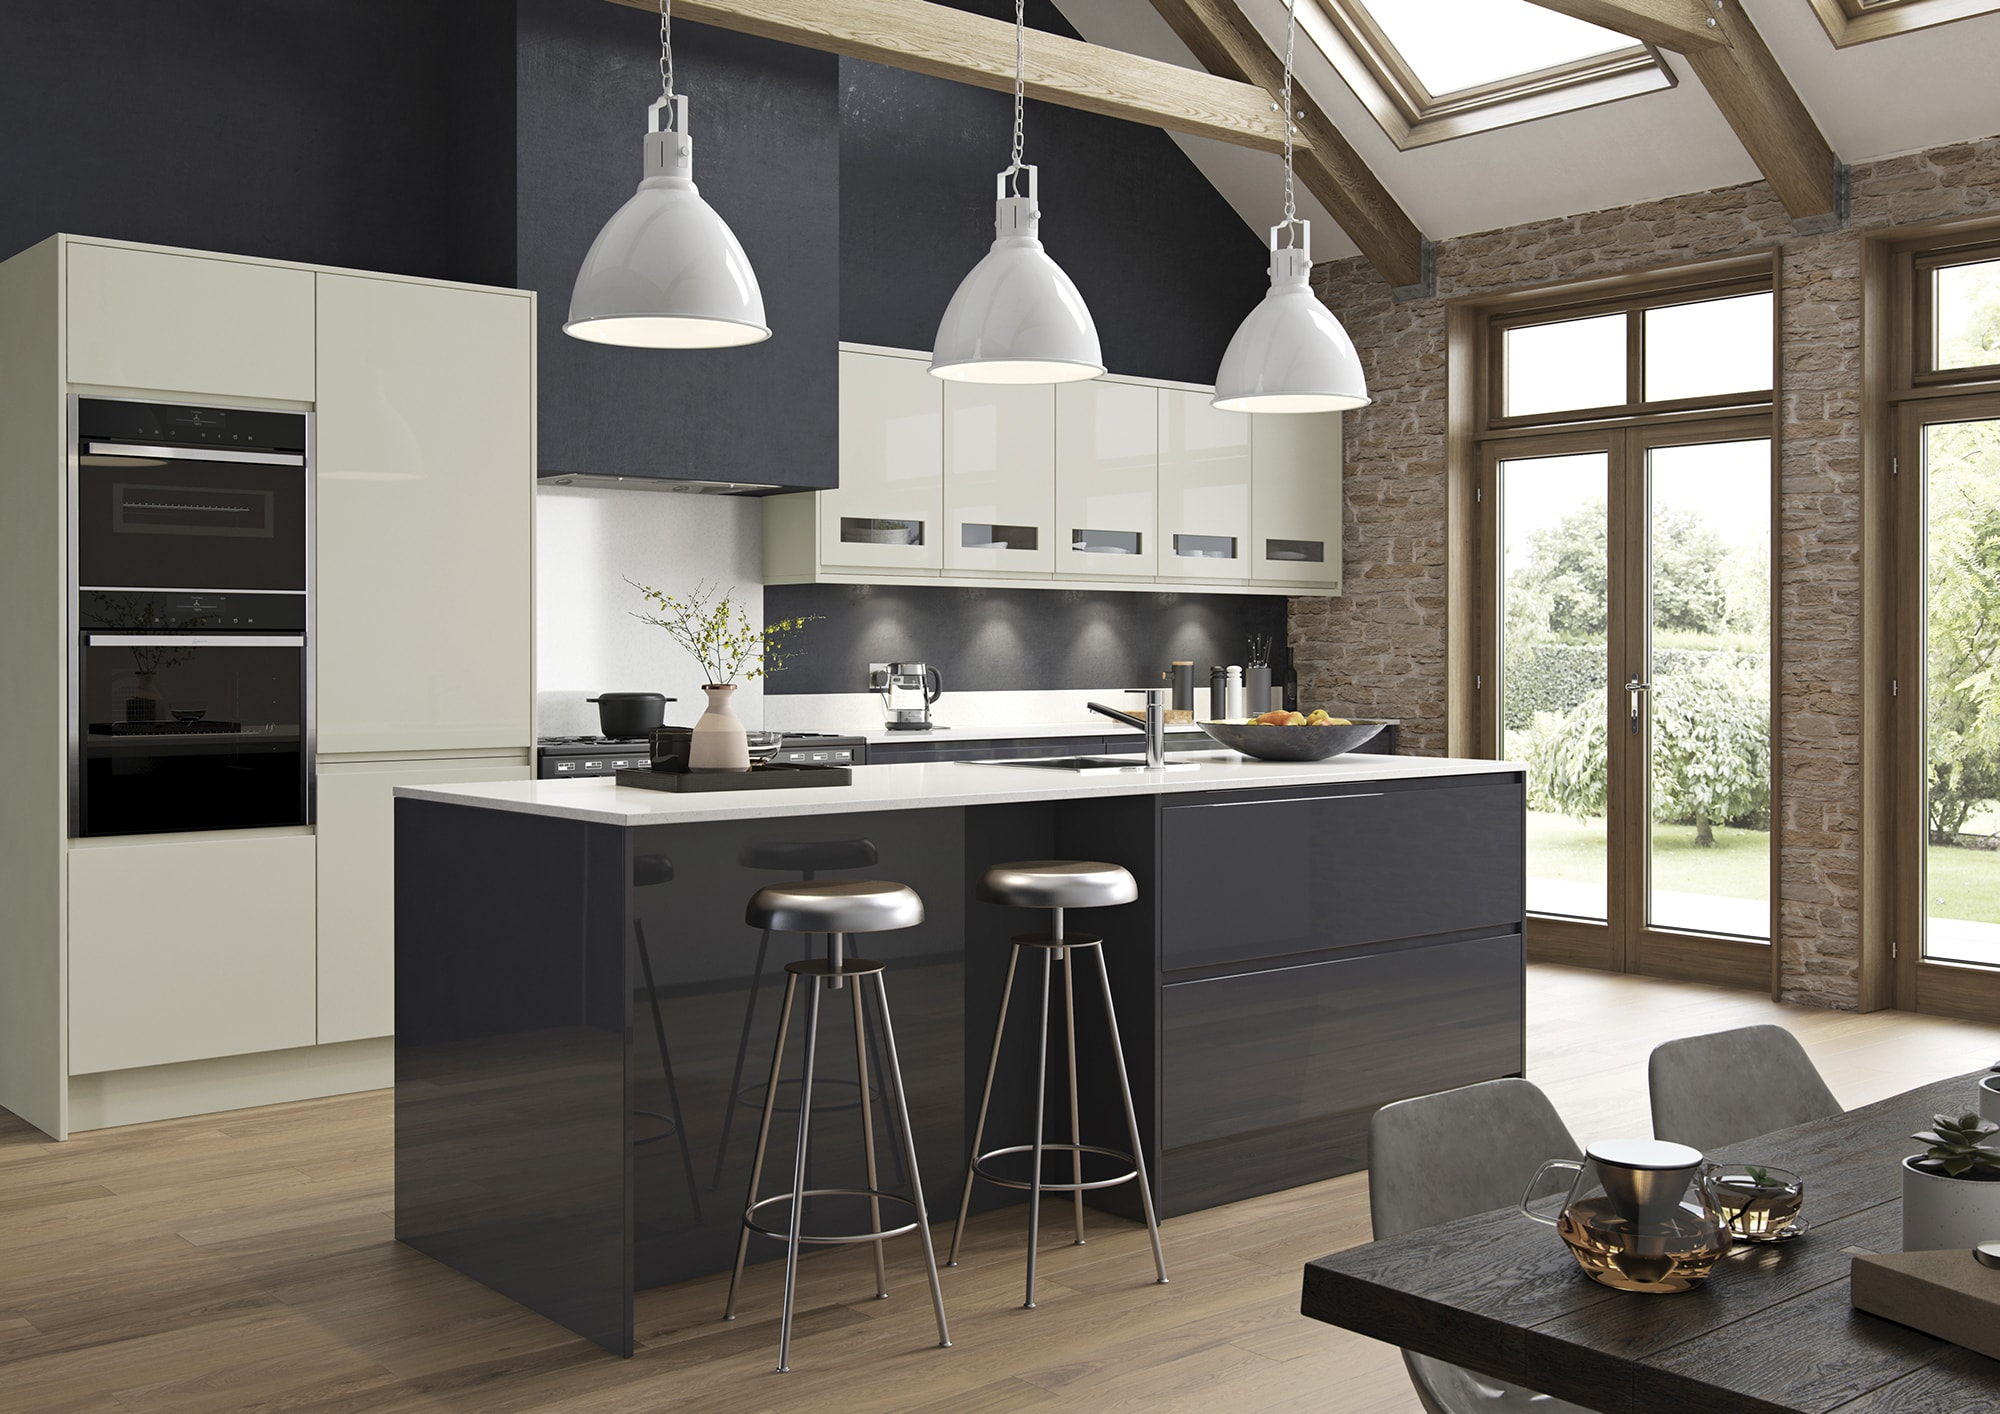 Handless Kitchen  Strada Gloss Porcelain  Graphite  Uform